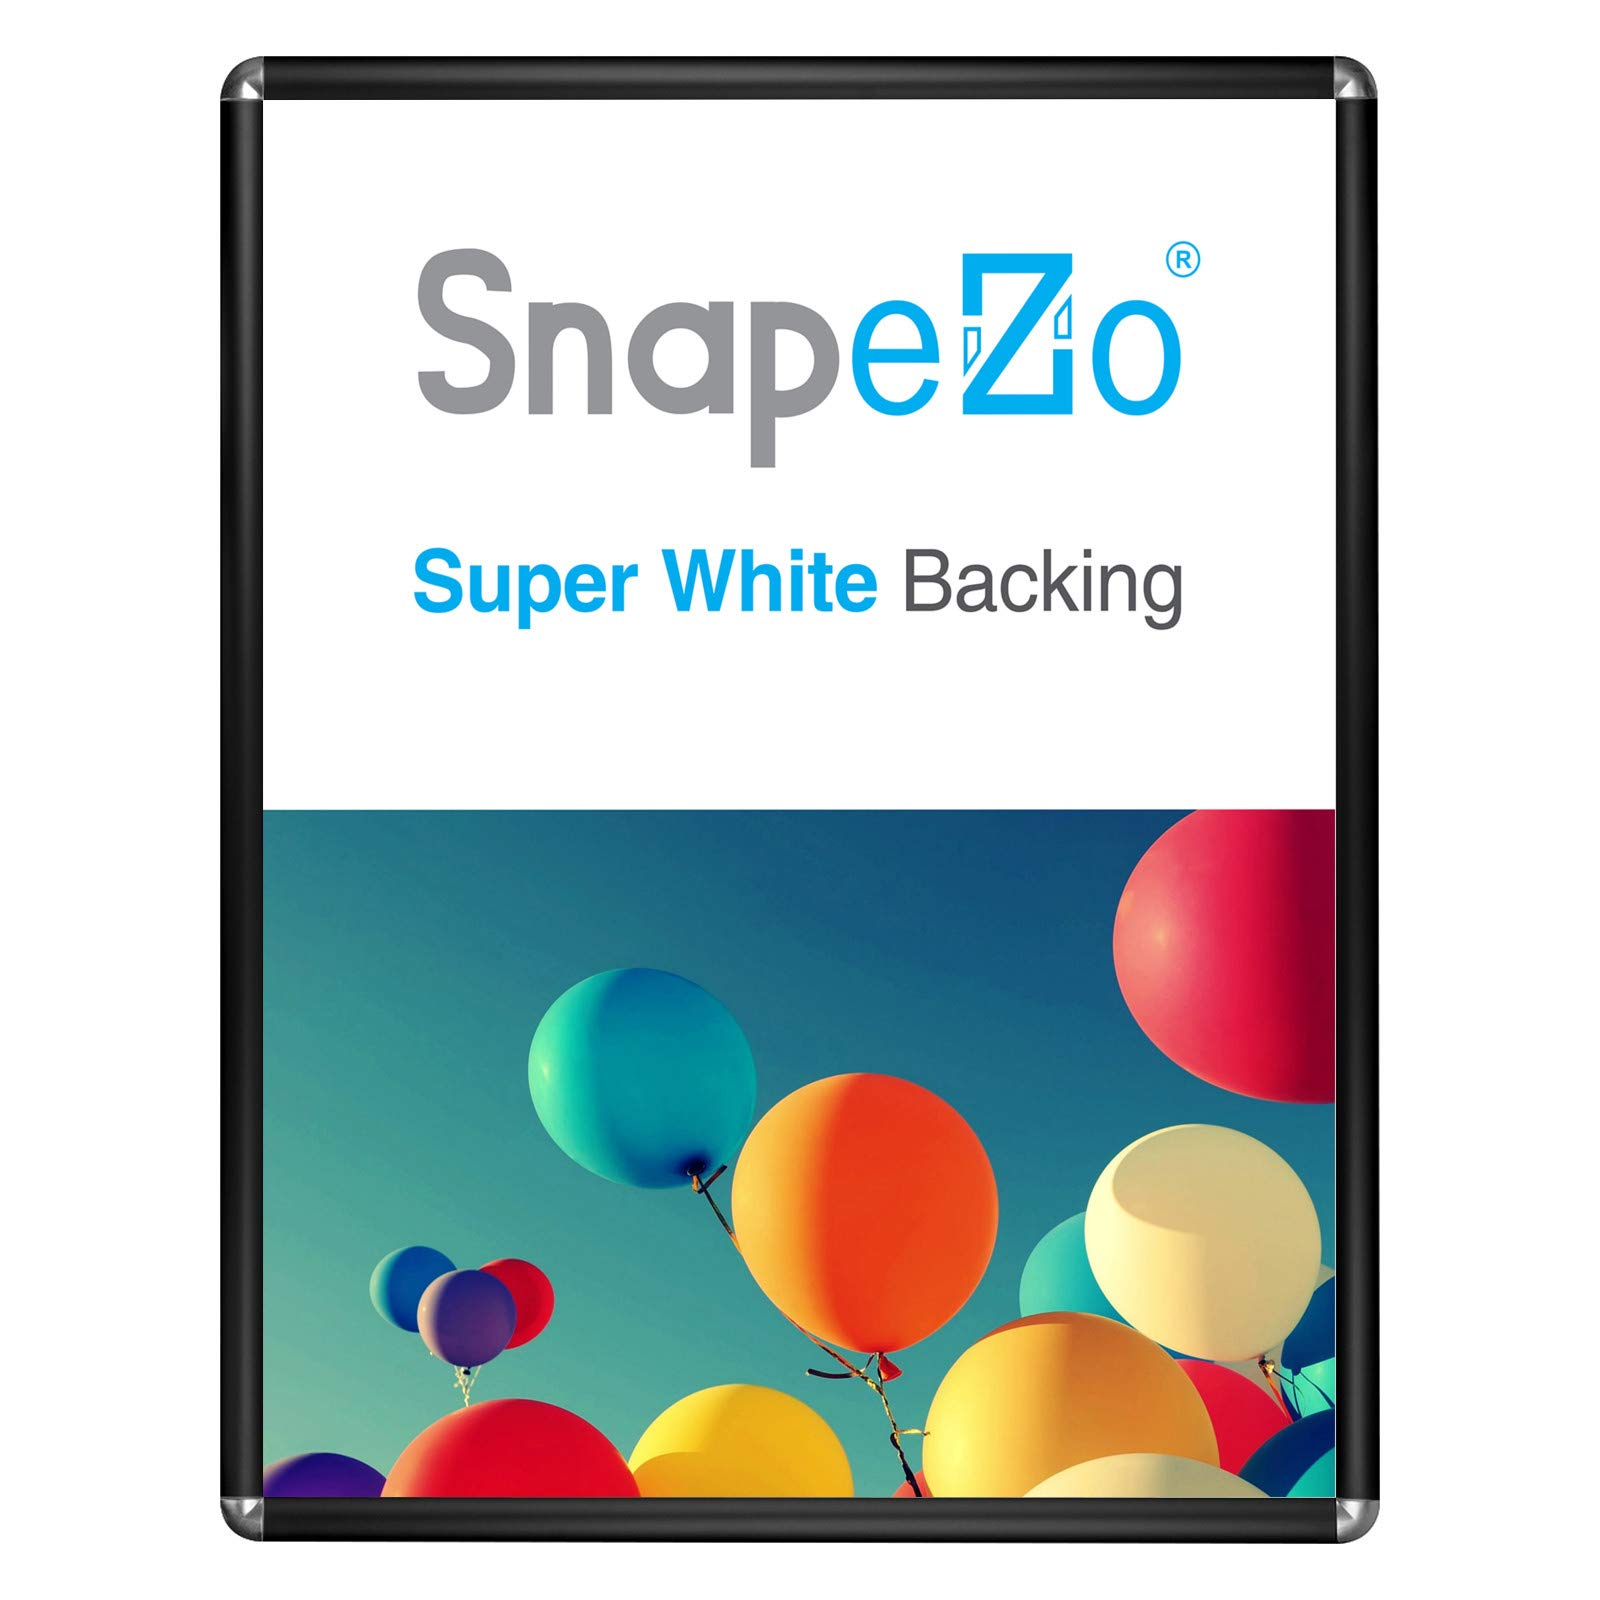 SnapeZo Movie Poster Frame 30x40 Inches, Black 1.25 Inch Aluminum Profile, Round-Cornered, Front-Loading Snap Frame, Wall Mounting, Professional Series